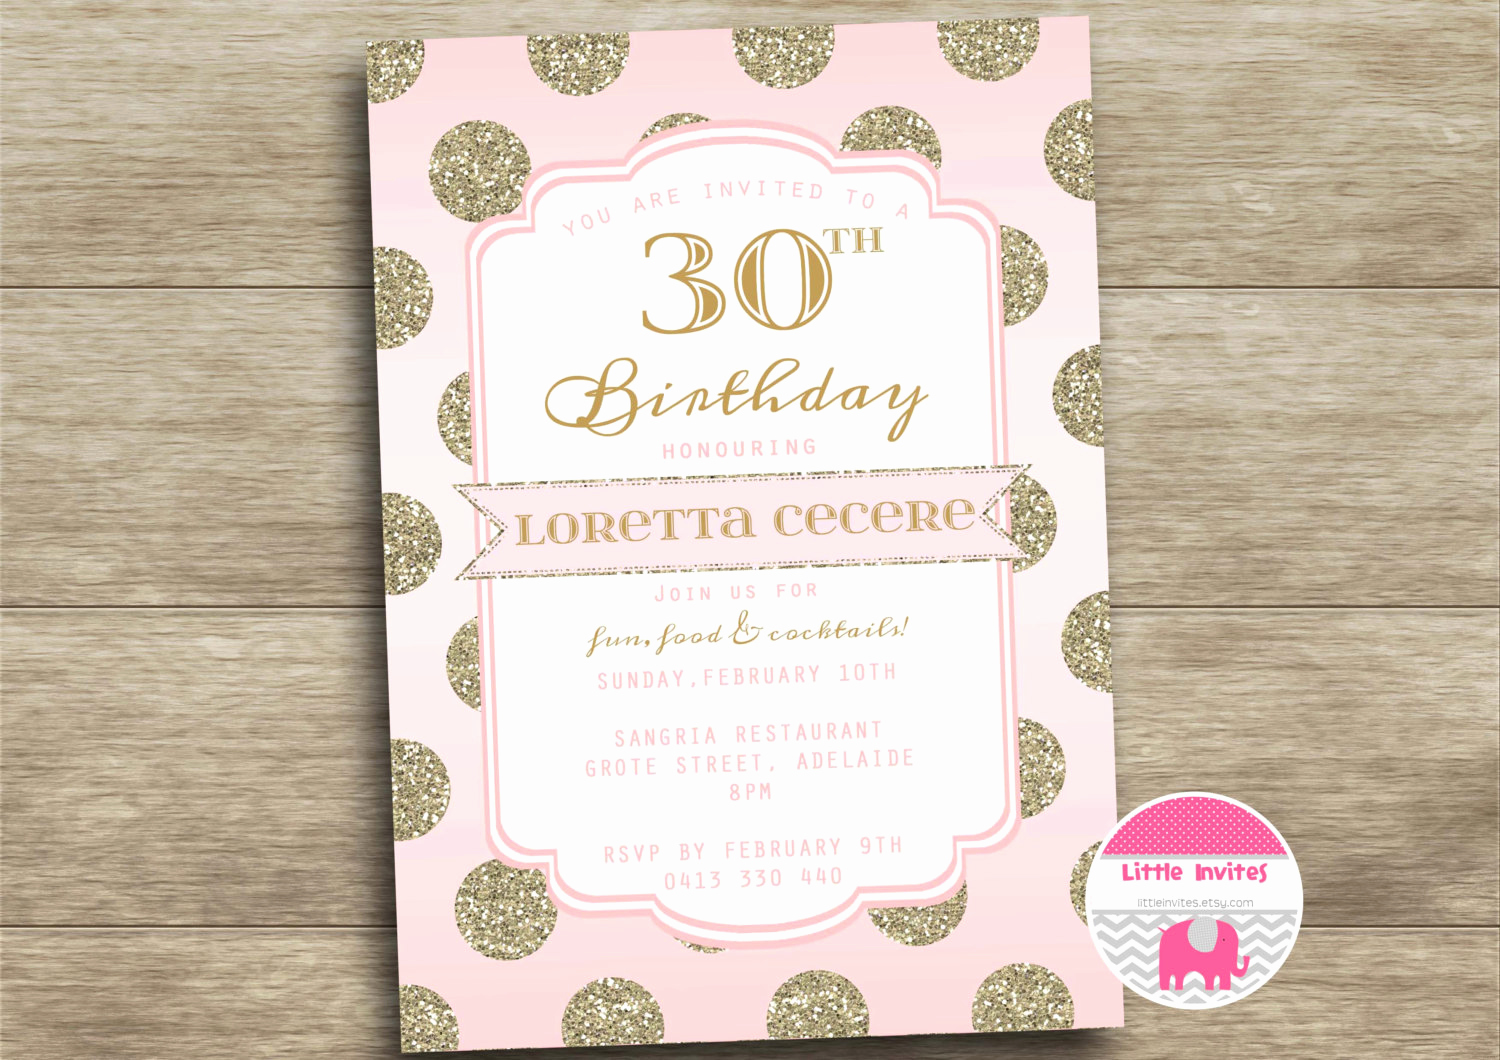 30th Birthday Invitation Wording Inspirational 30th Birthday Invitation Women